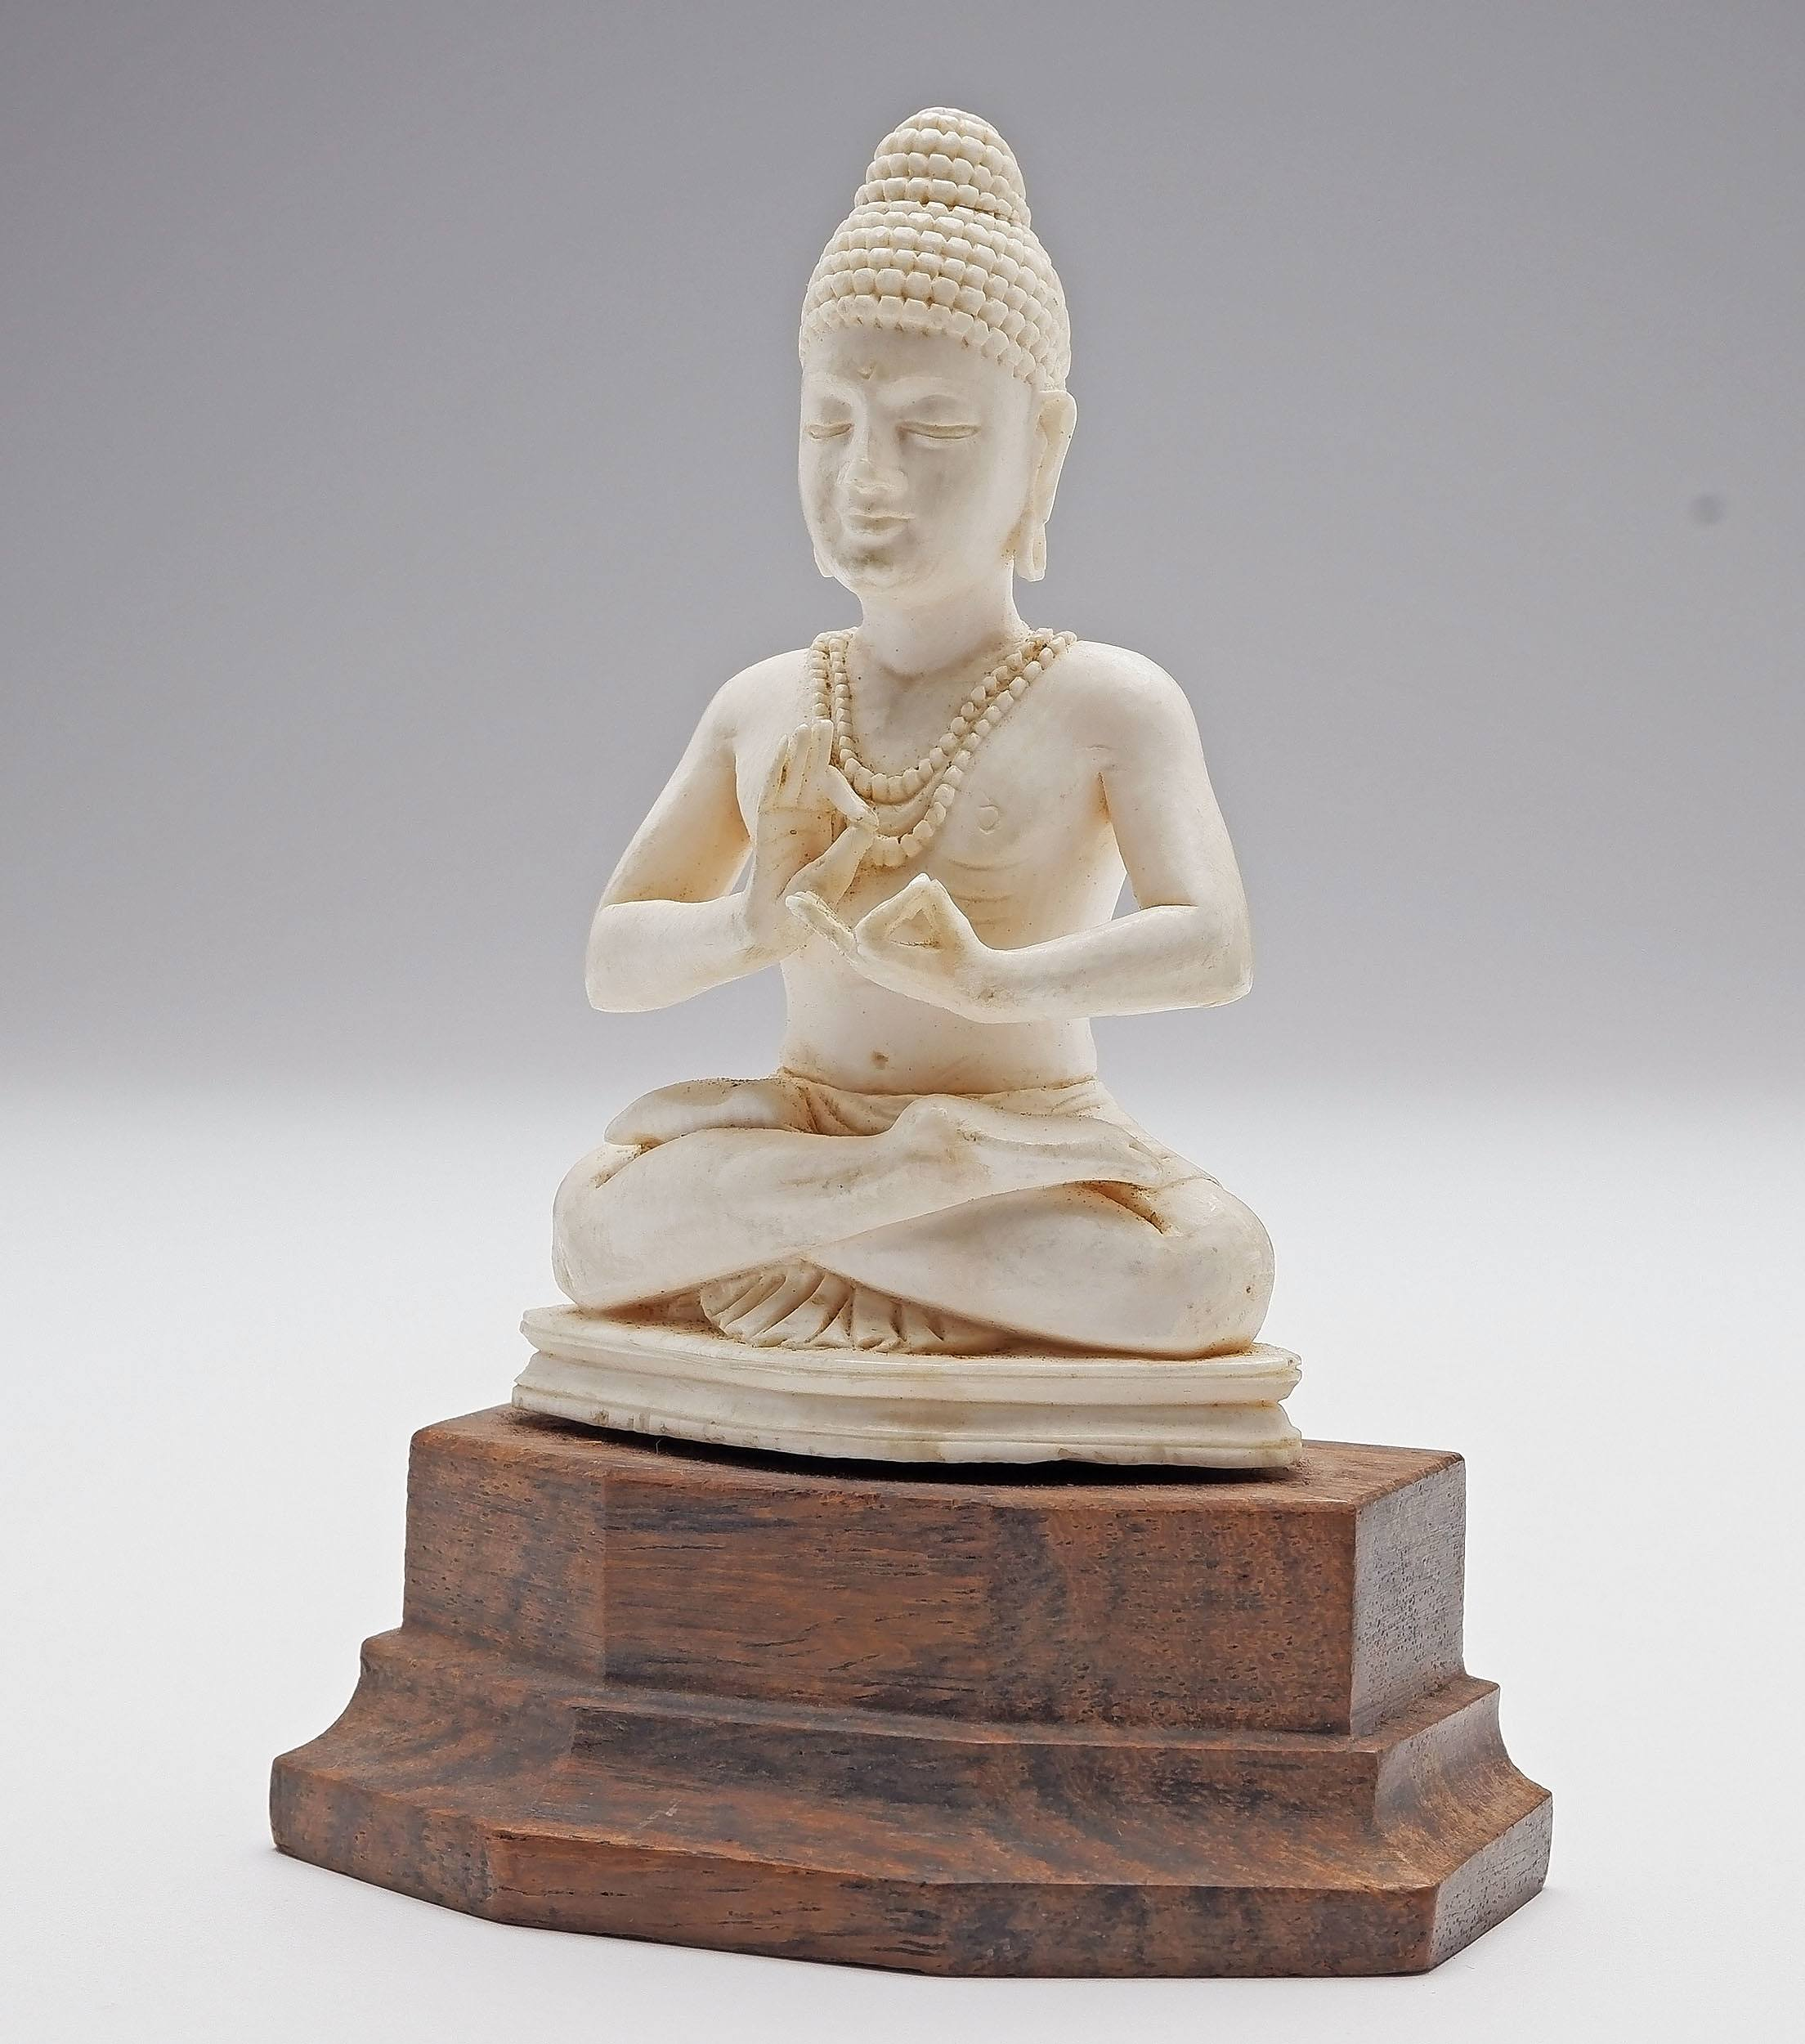 'Indian Carved Ivory Hindu Diety'